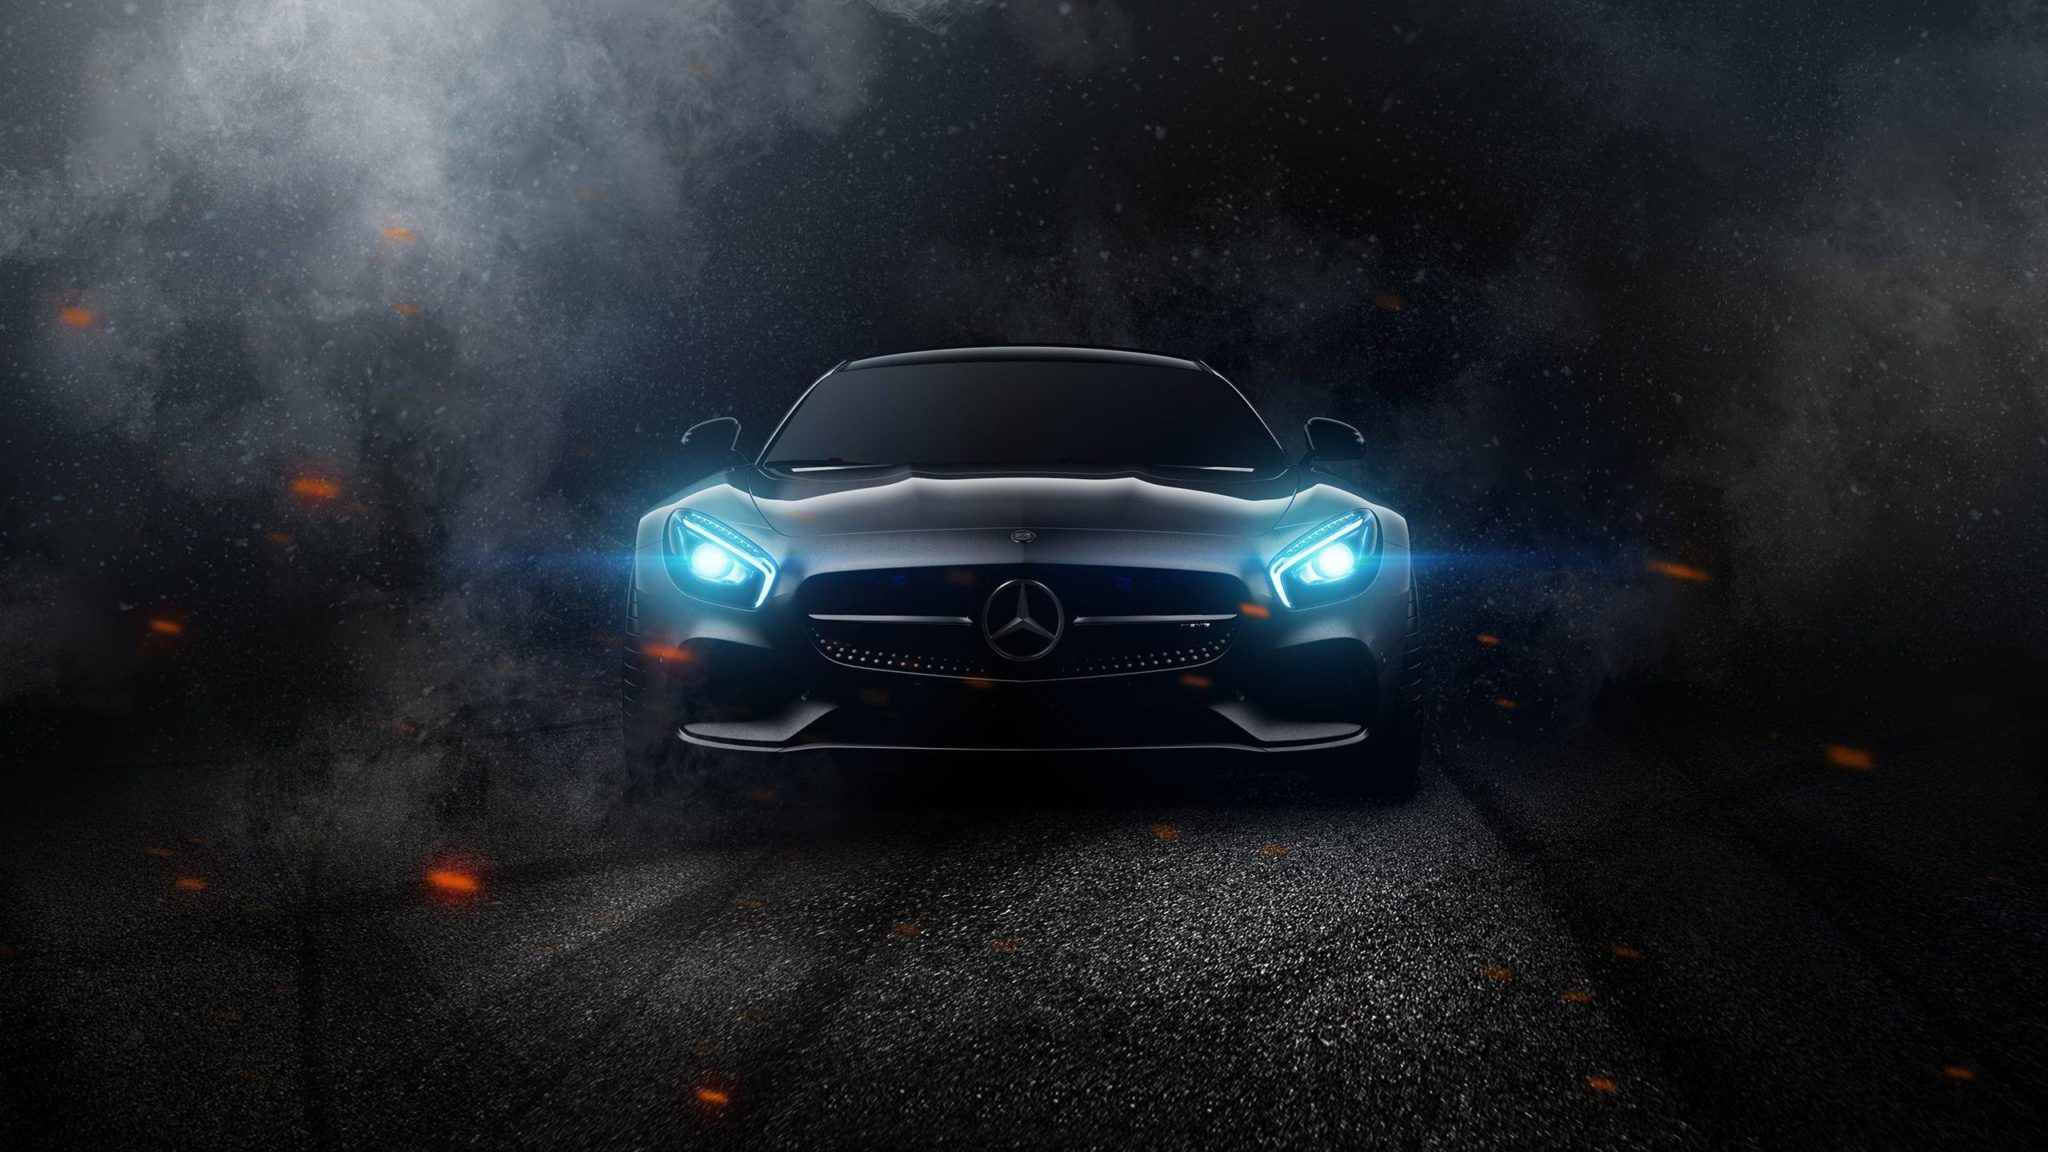 Mercedes Benz Free Full Hd Wallpapers 90 With Images